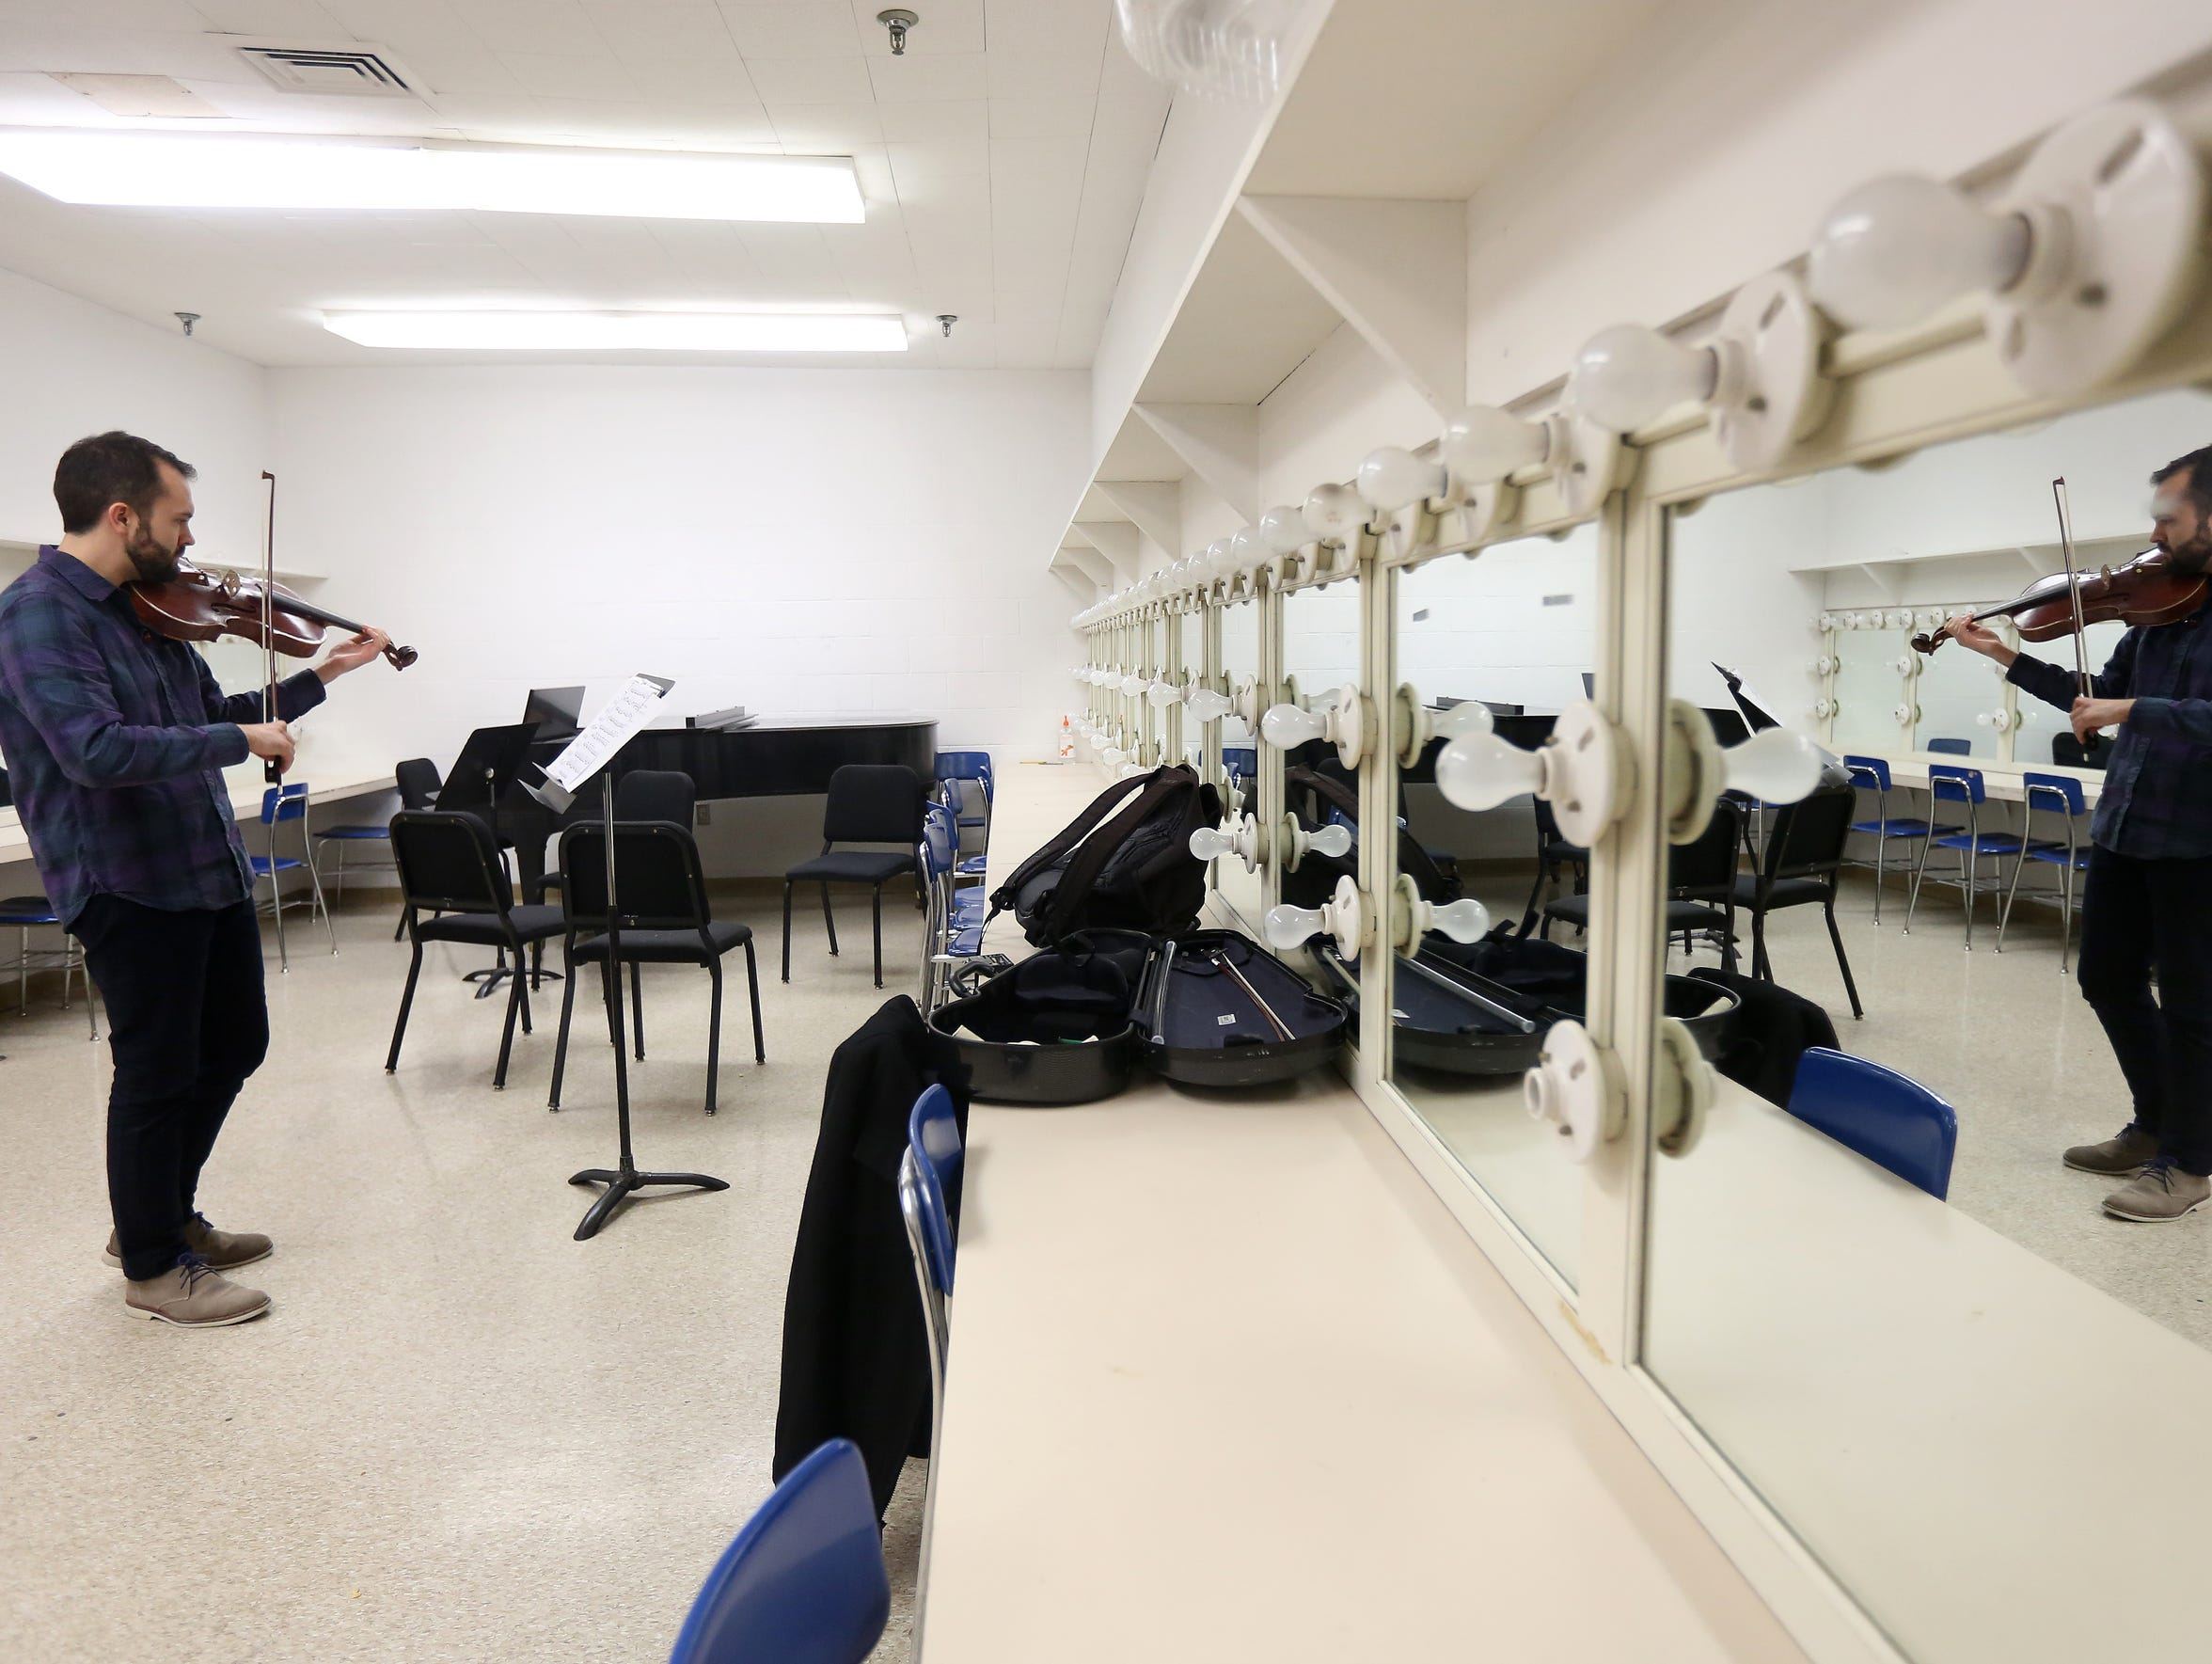 Goist practices in the dressing room of Music Hall